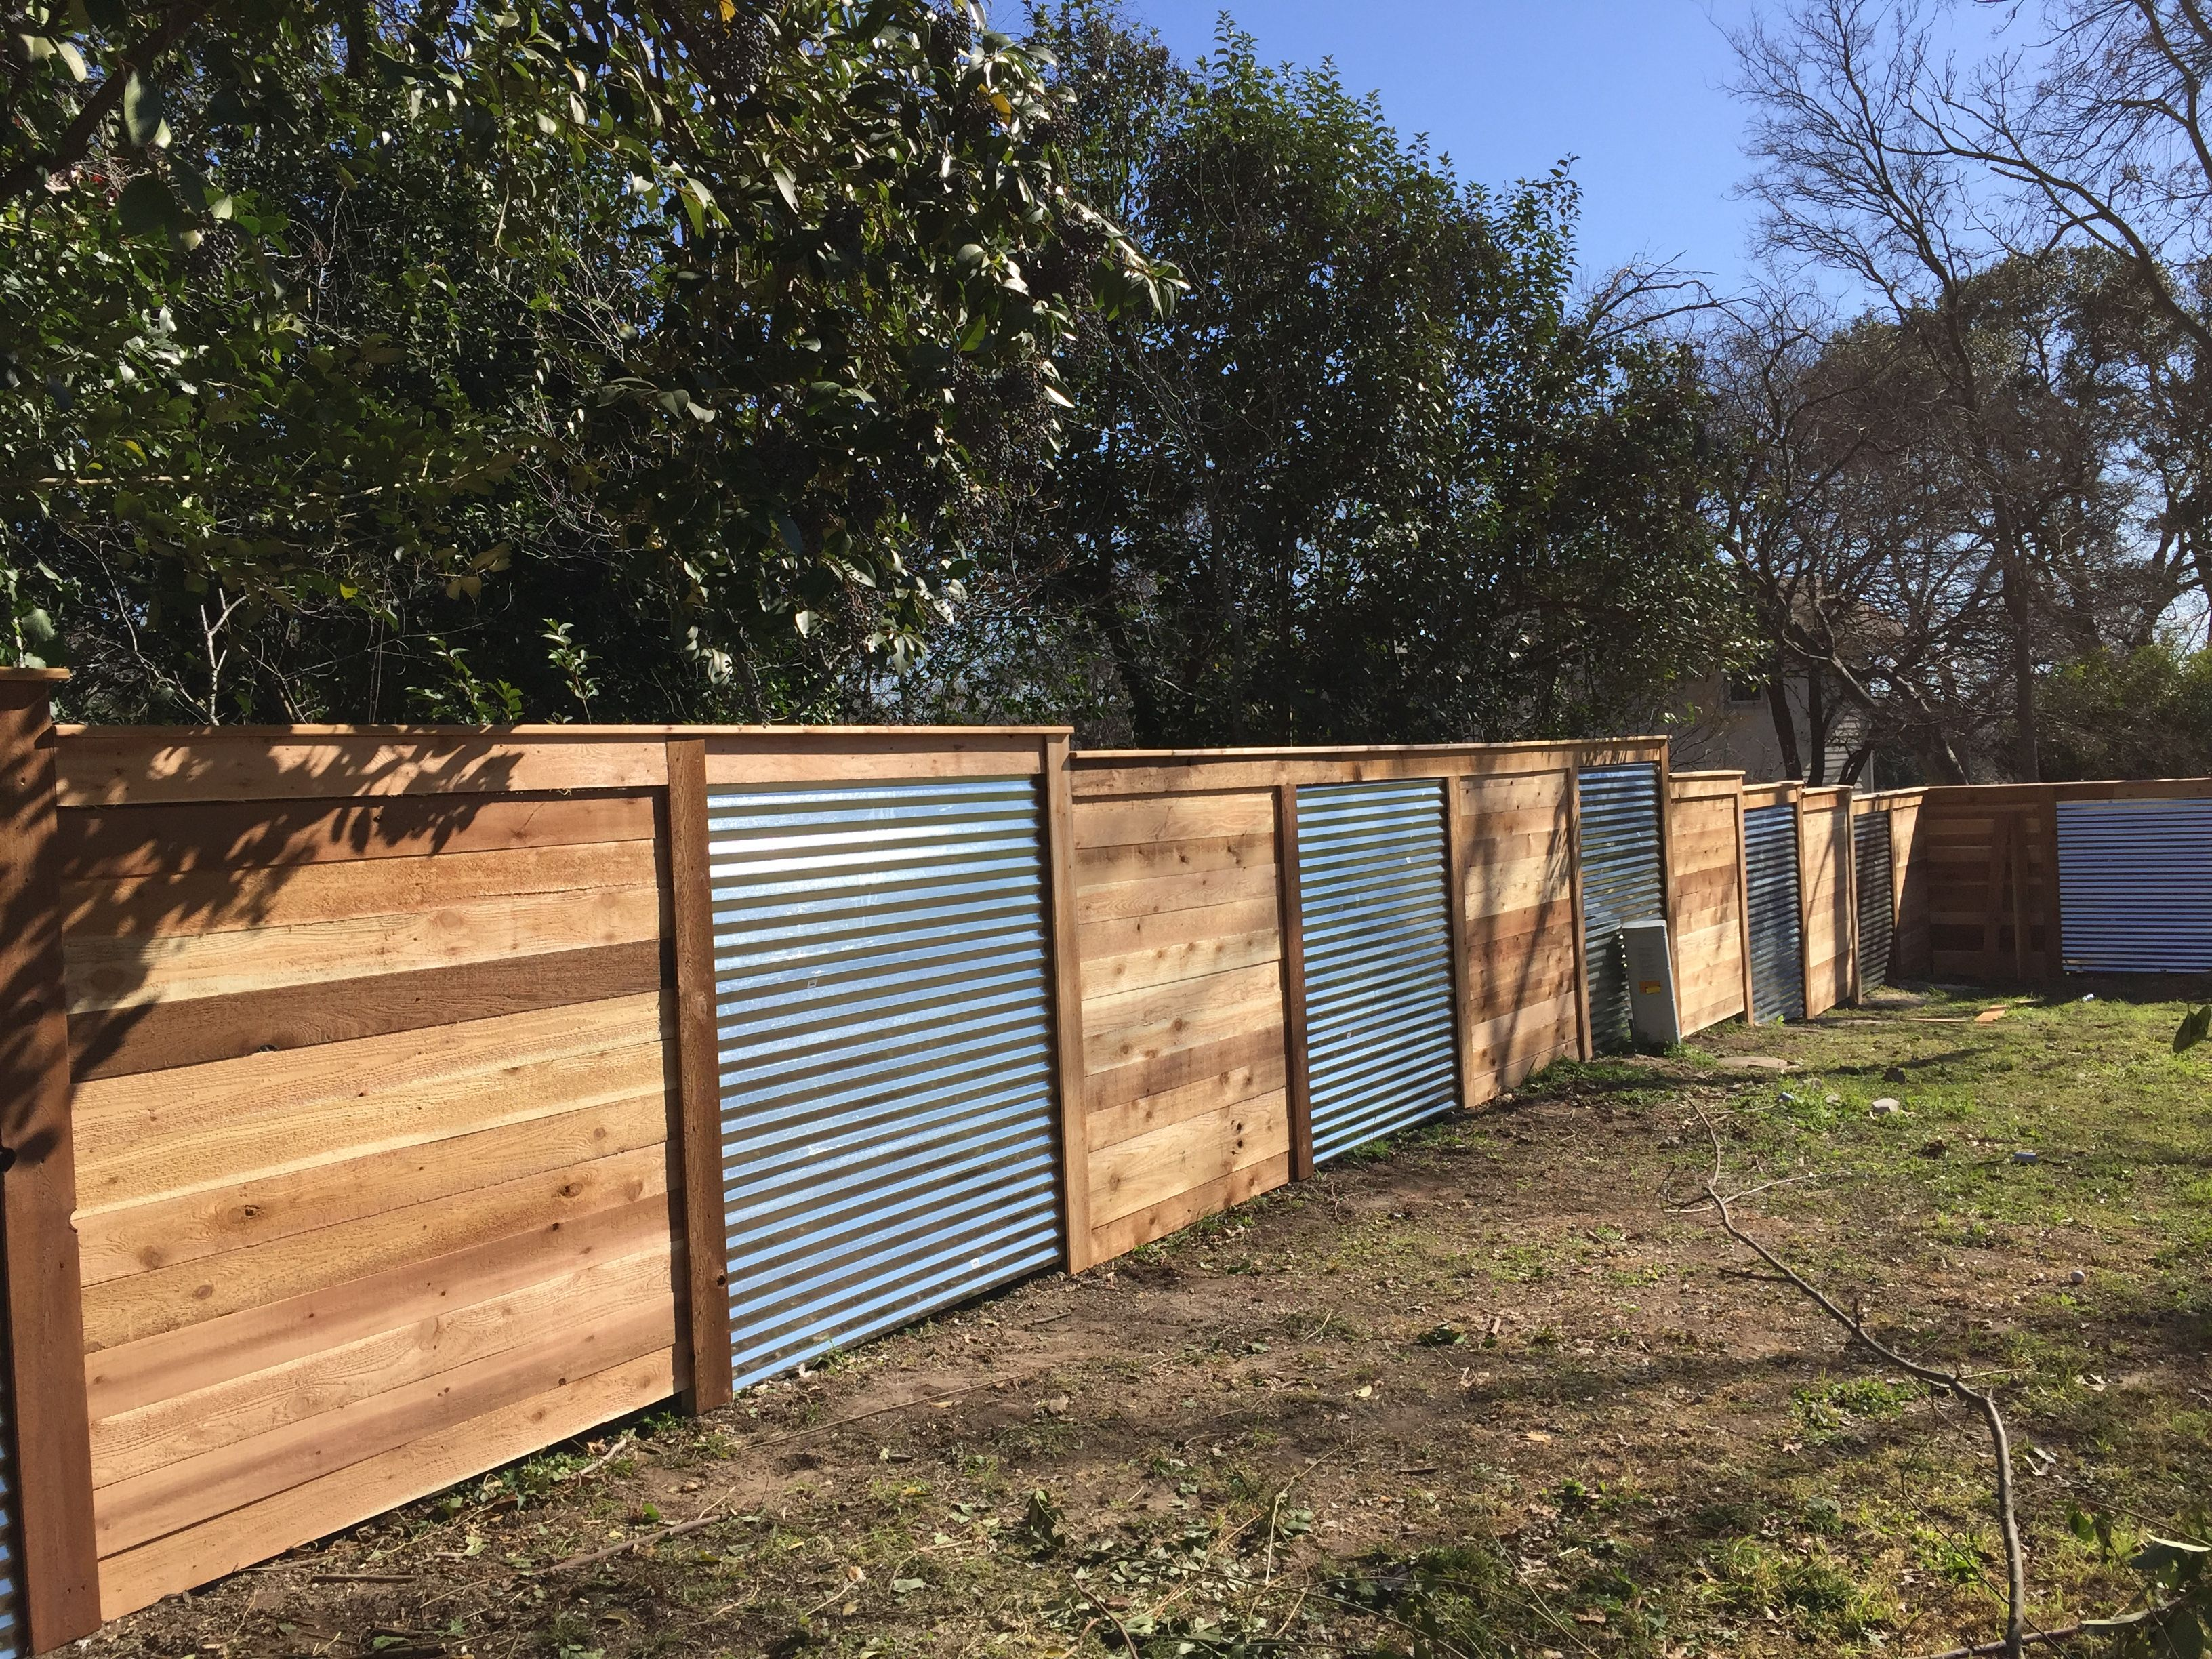 Horizontal With Corrugated Metal Cinder Block Building A Fence